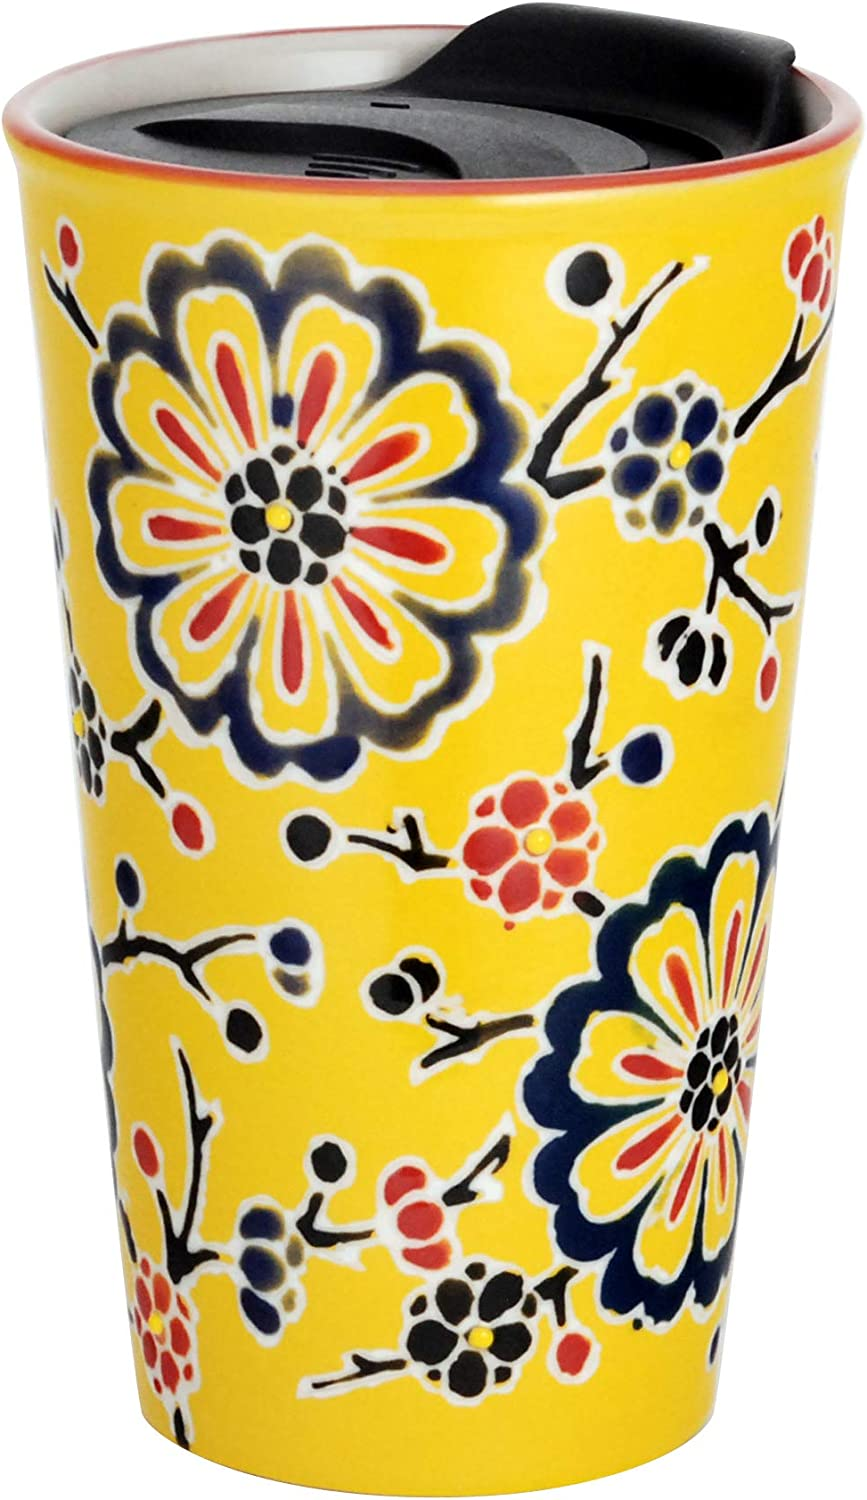 Hinomaru Collection Japanese Asian Design Porcelain Travel Mug Double Wall Insulated Tumbler with Wrap Lid 12 fl oz Coffee Travel Mug Hot or Cold Beverage (Yellow Blossoms)